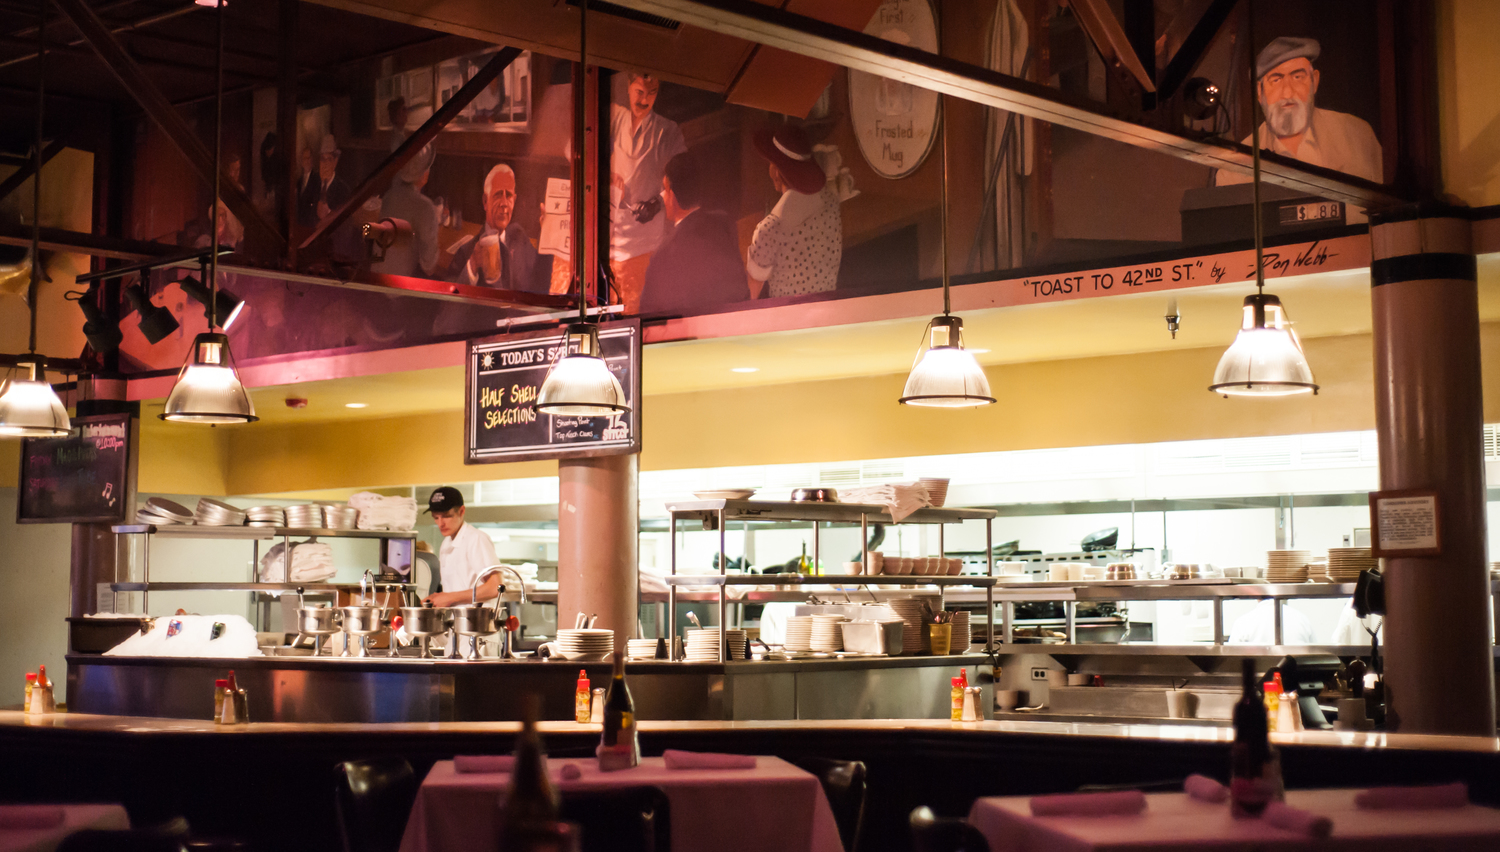 42nd St Oyster Bar Seafood Grill